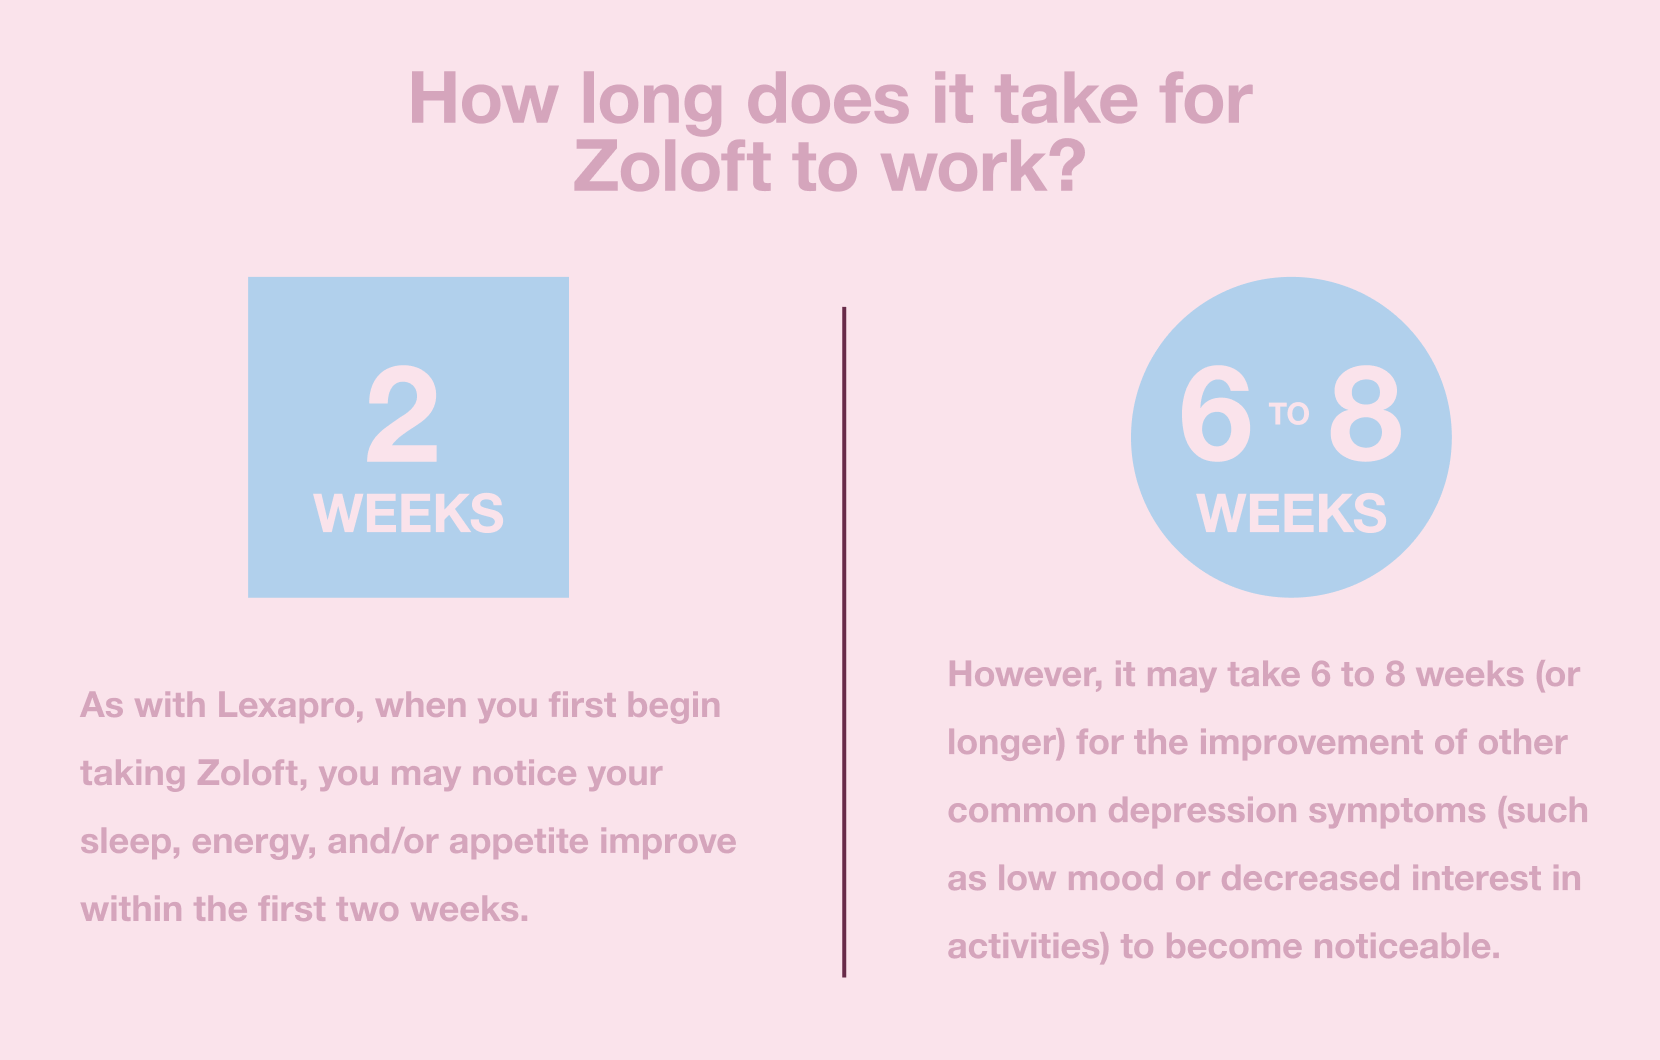 How long does it take for Zoloft to work?